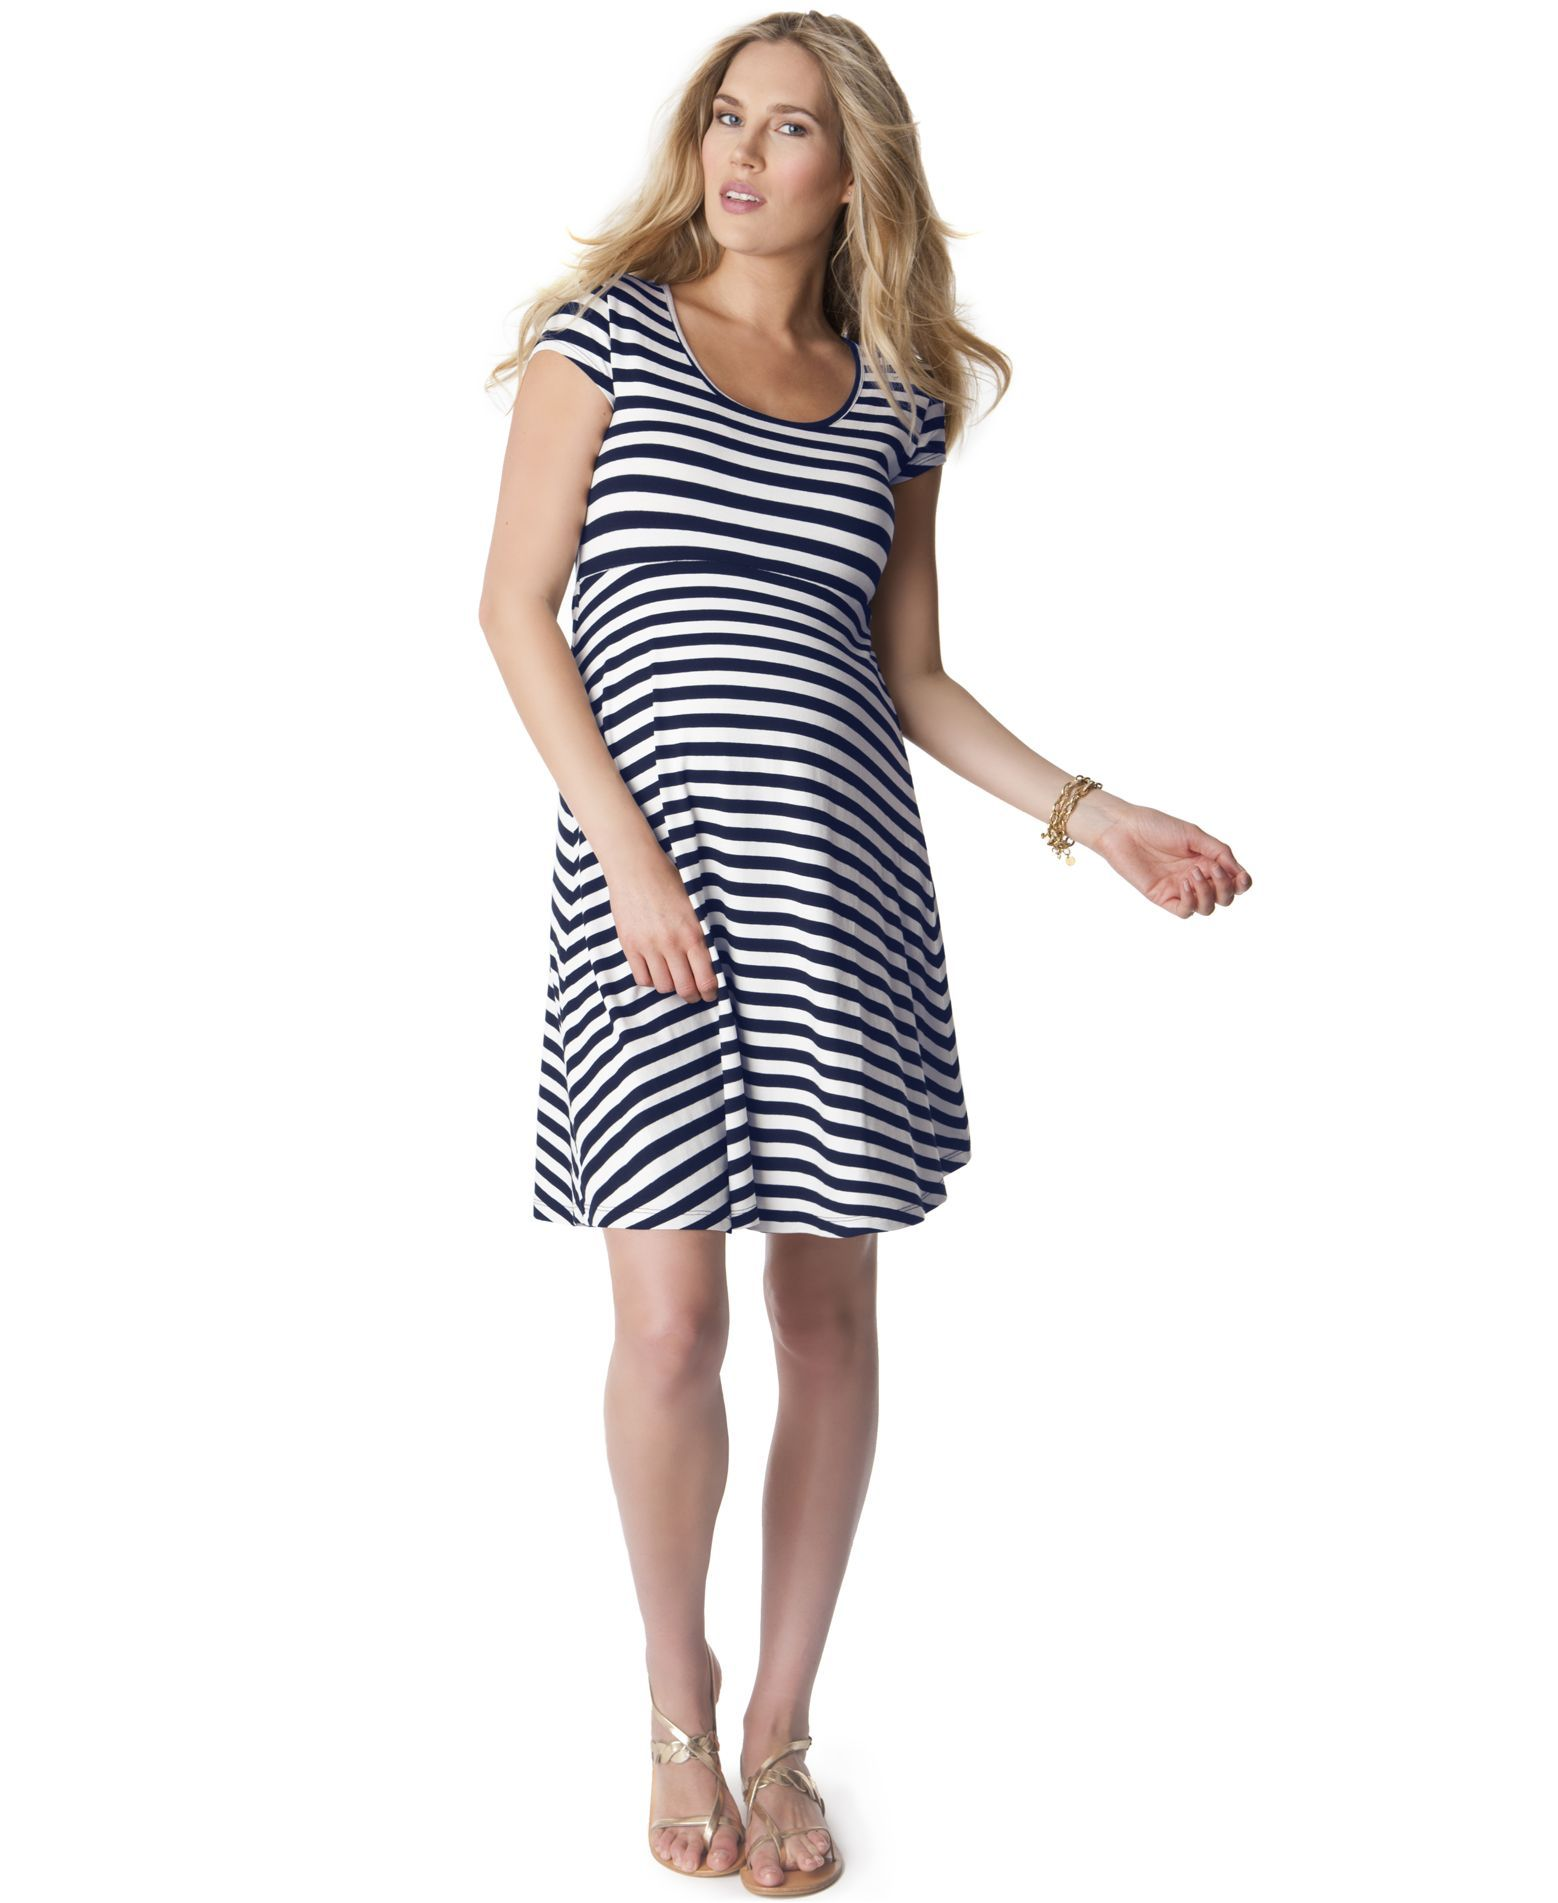 cd5a9cba0306d Seraphine Maternity Striped Cap-Sleeve Dress | Nautical Sewing ...